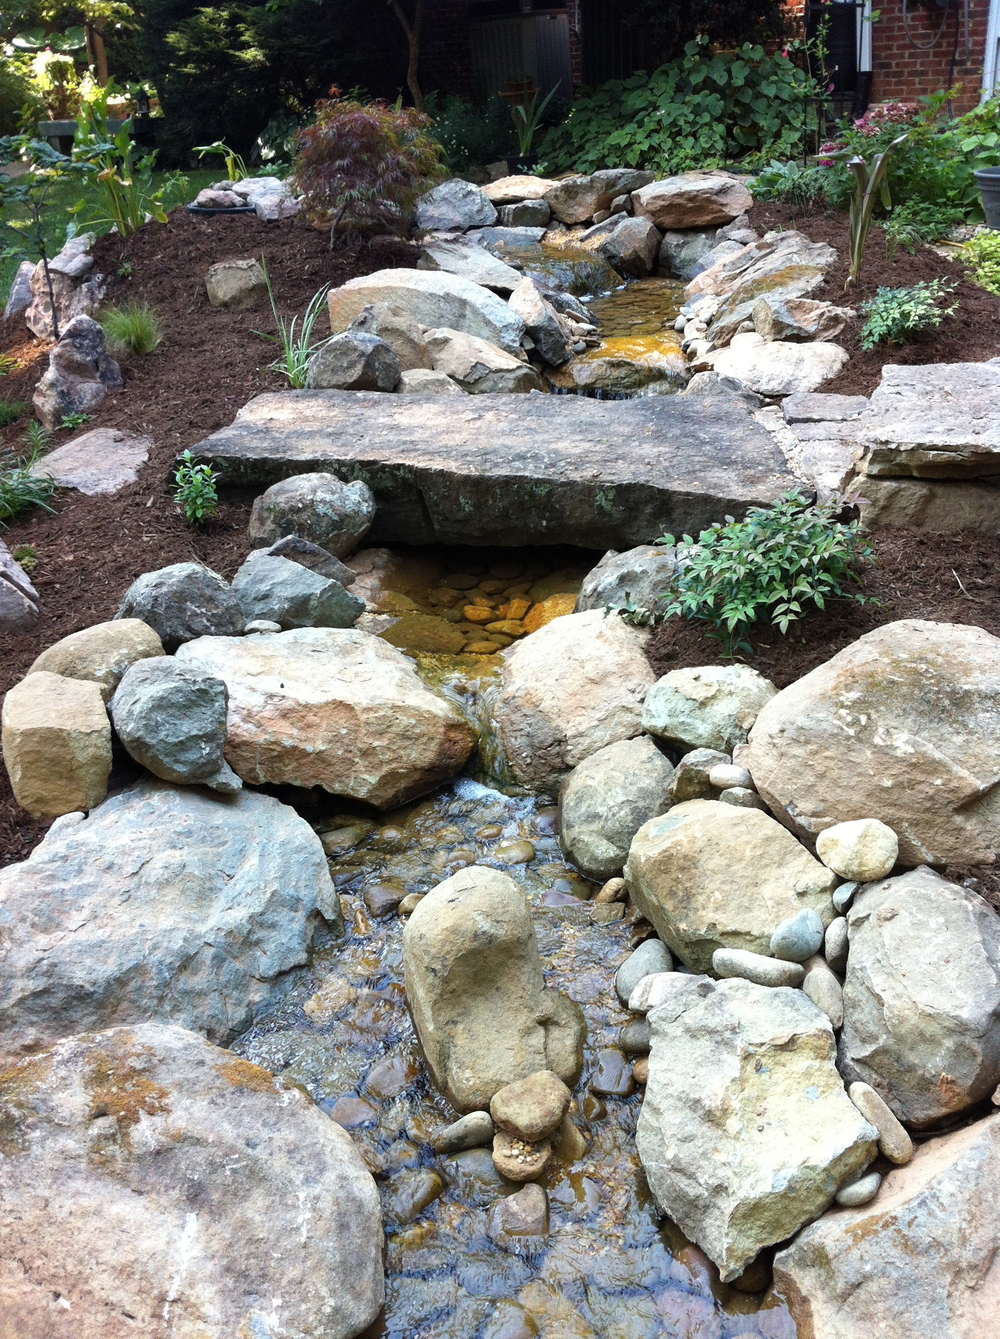 Native NC stones create a natural stream